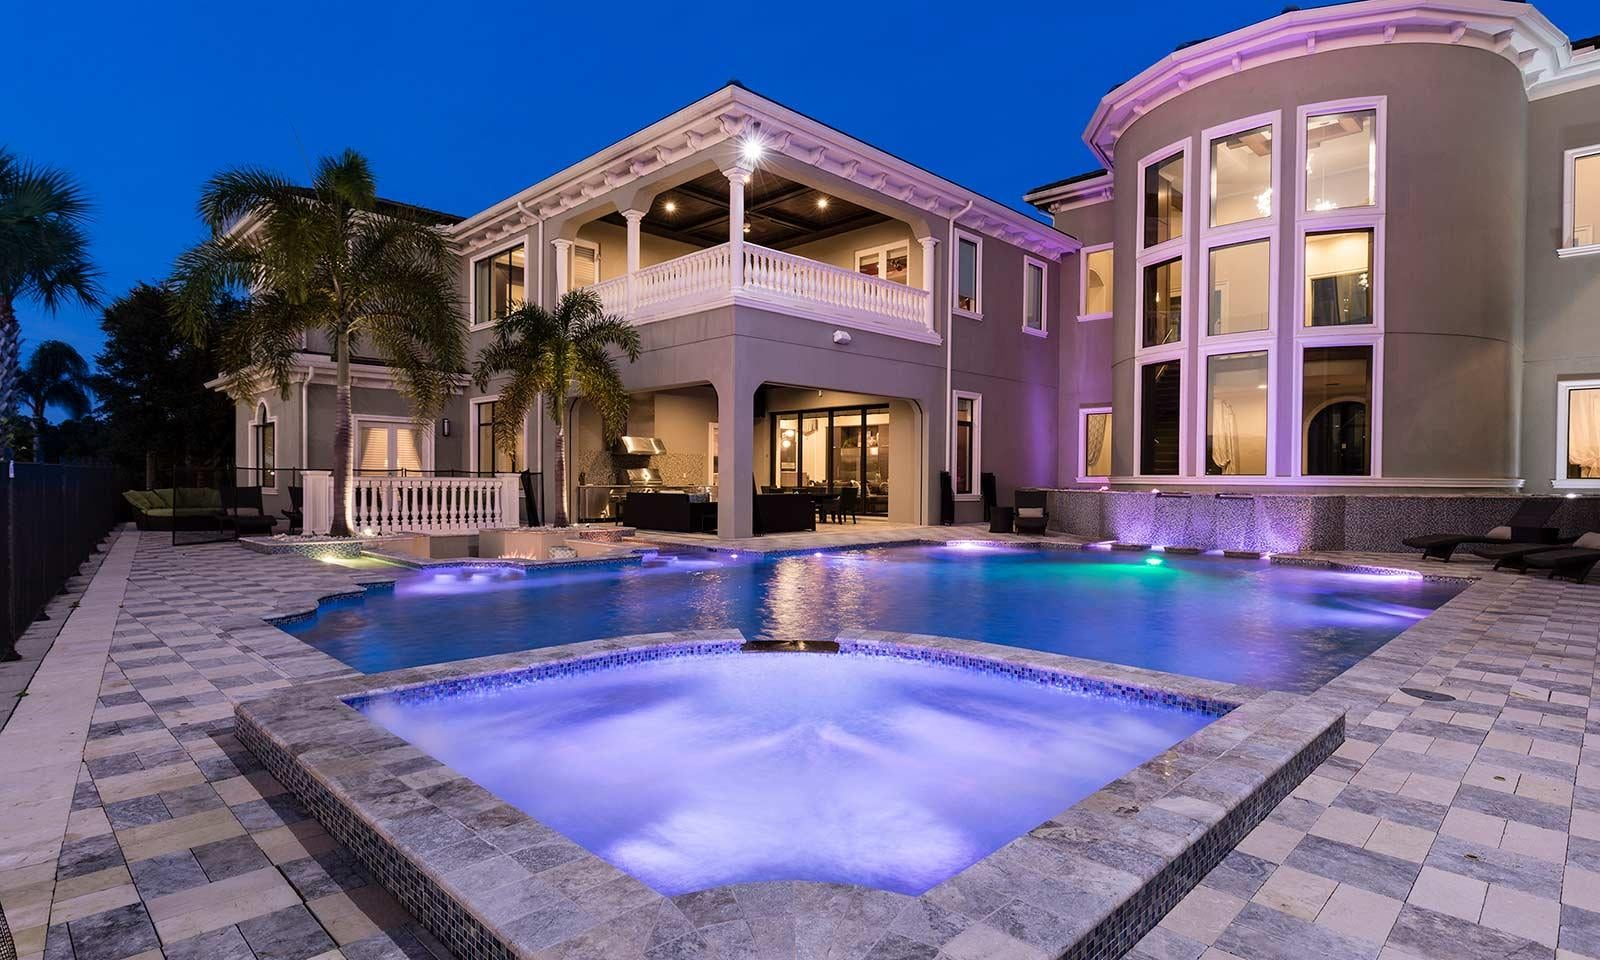 Luxury rental home near Disney with Private pool.